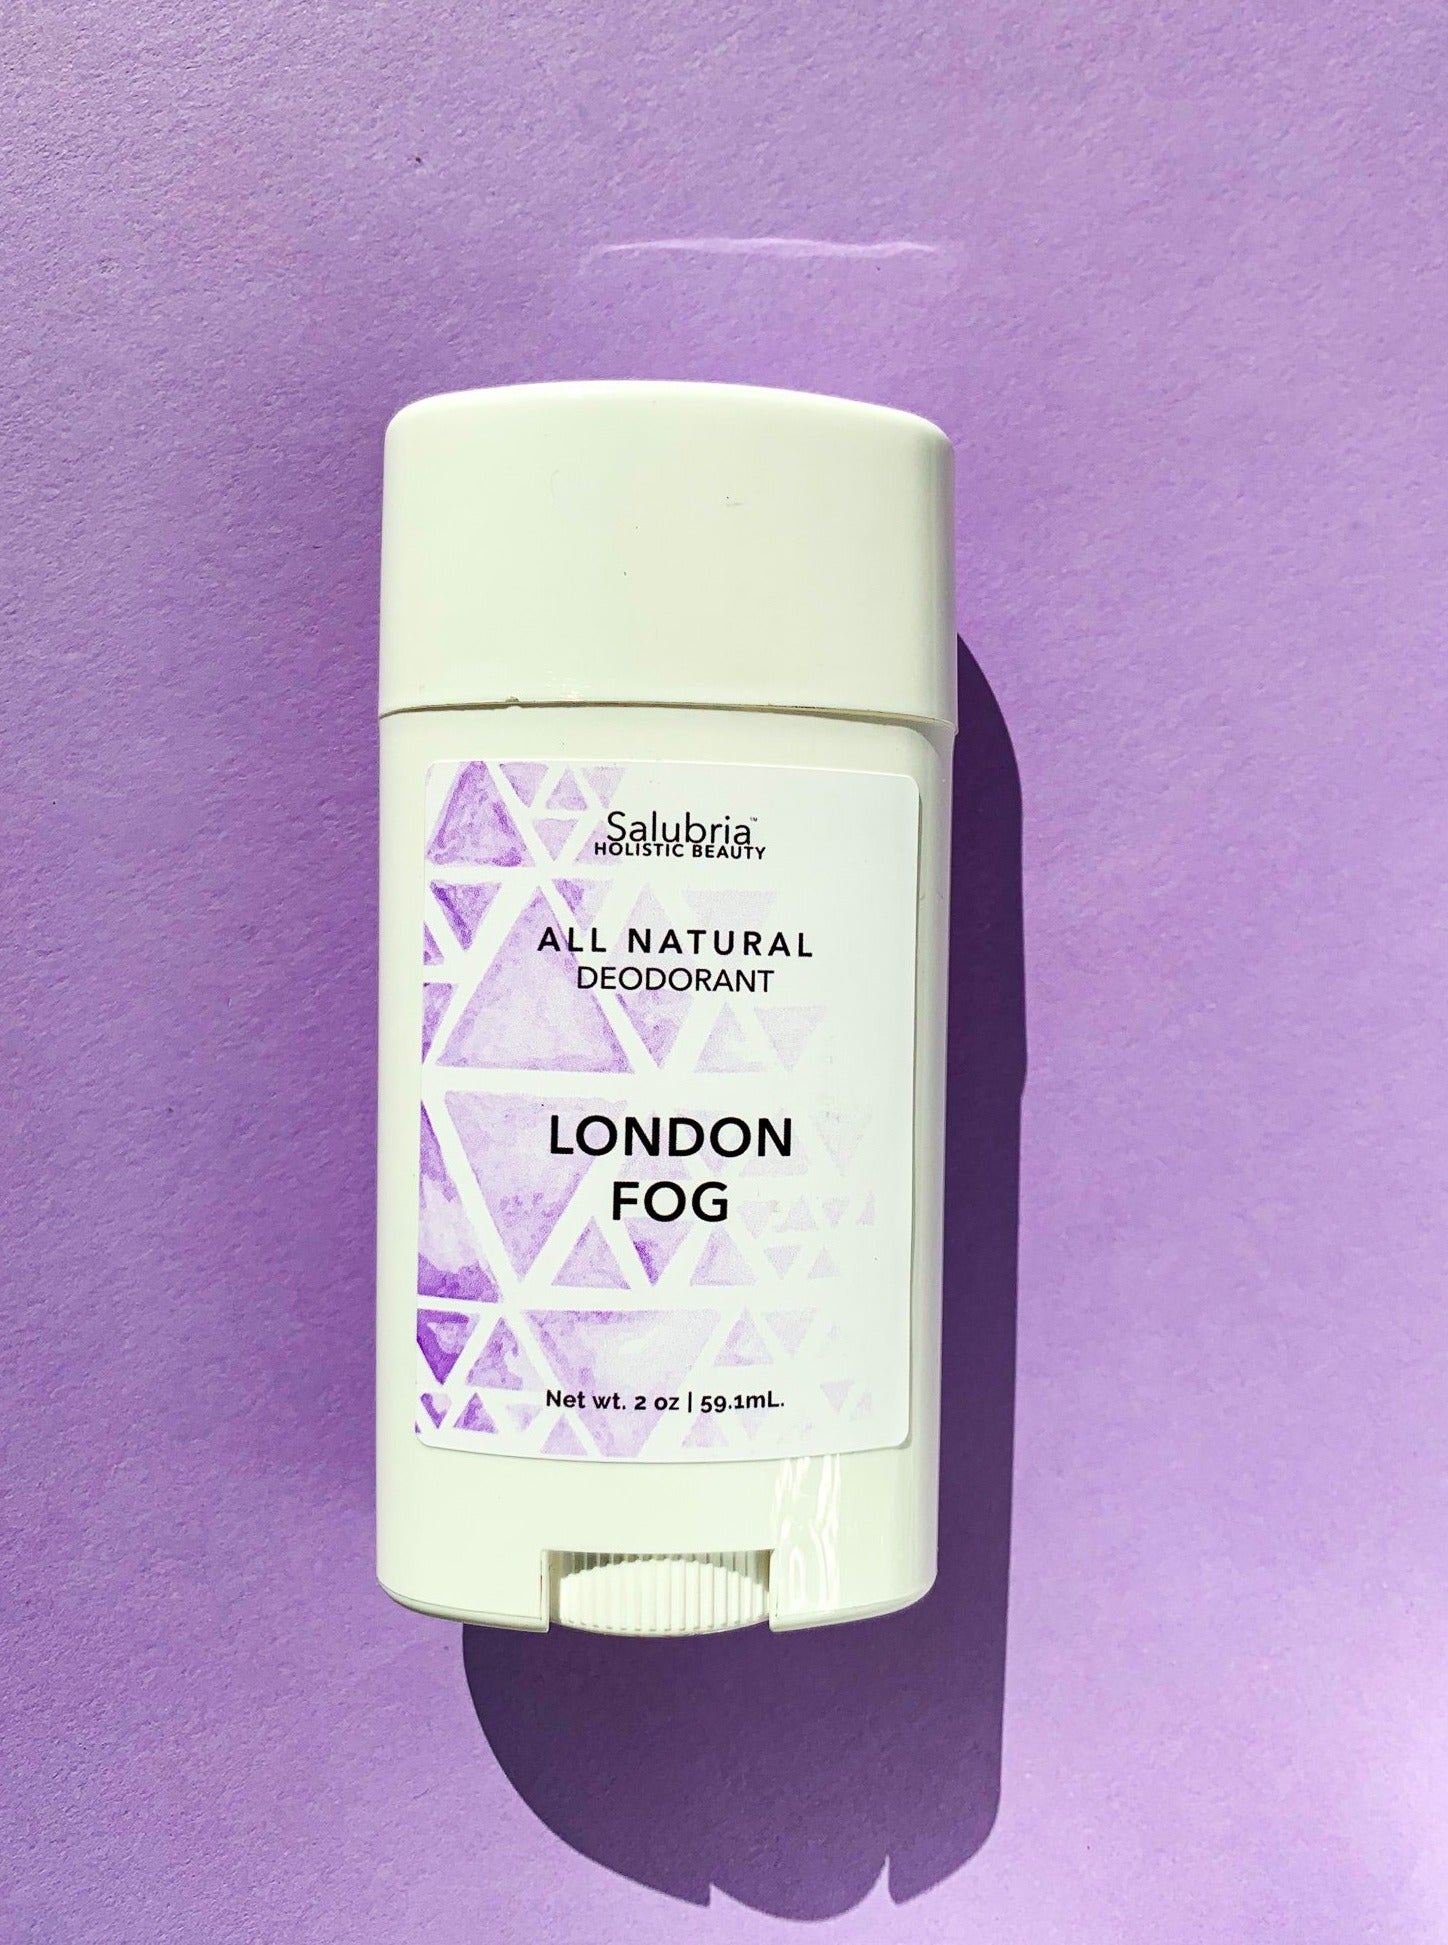 London Fog Deodorant - Salubria